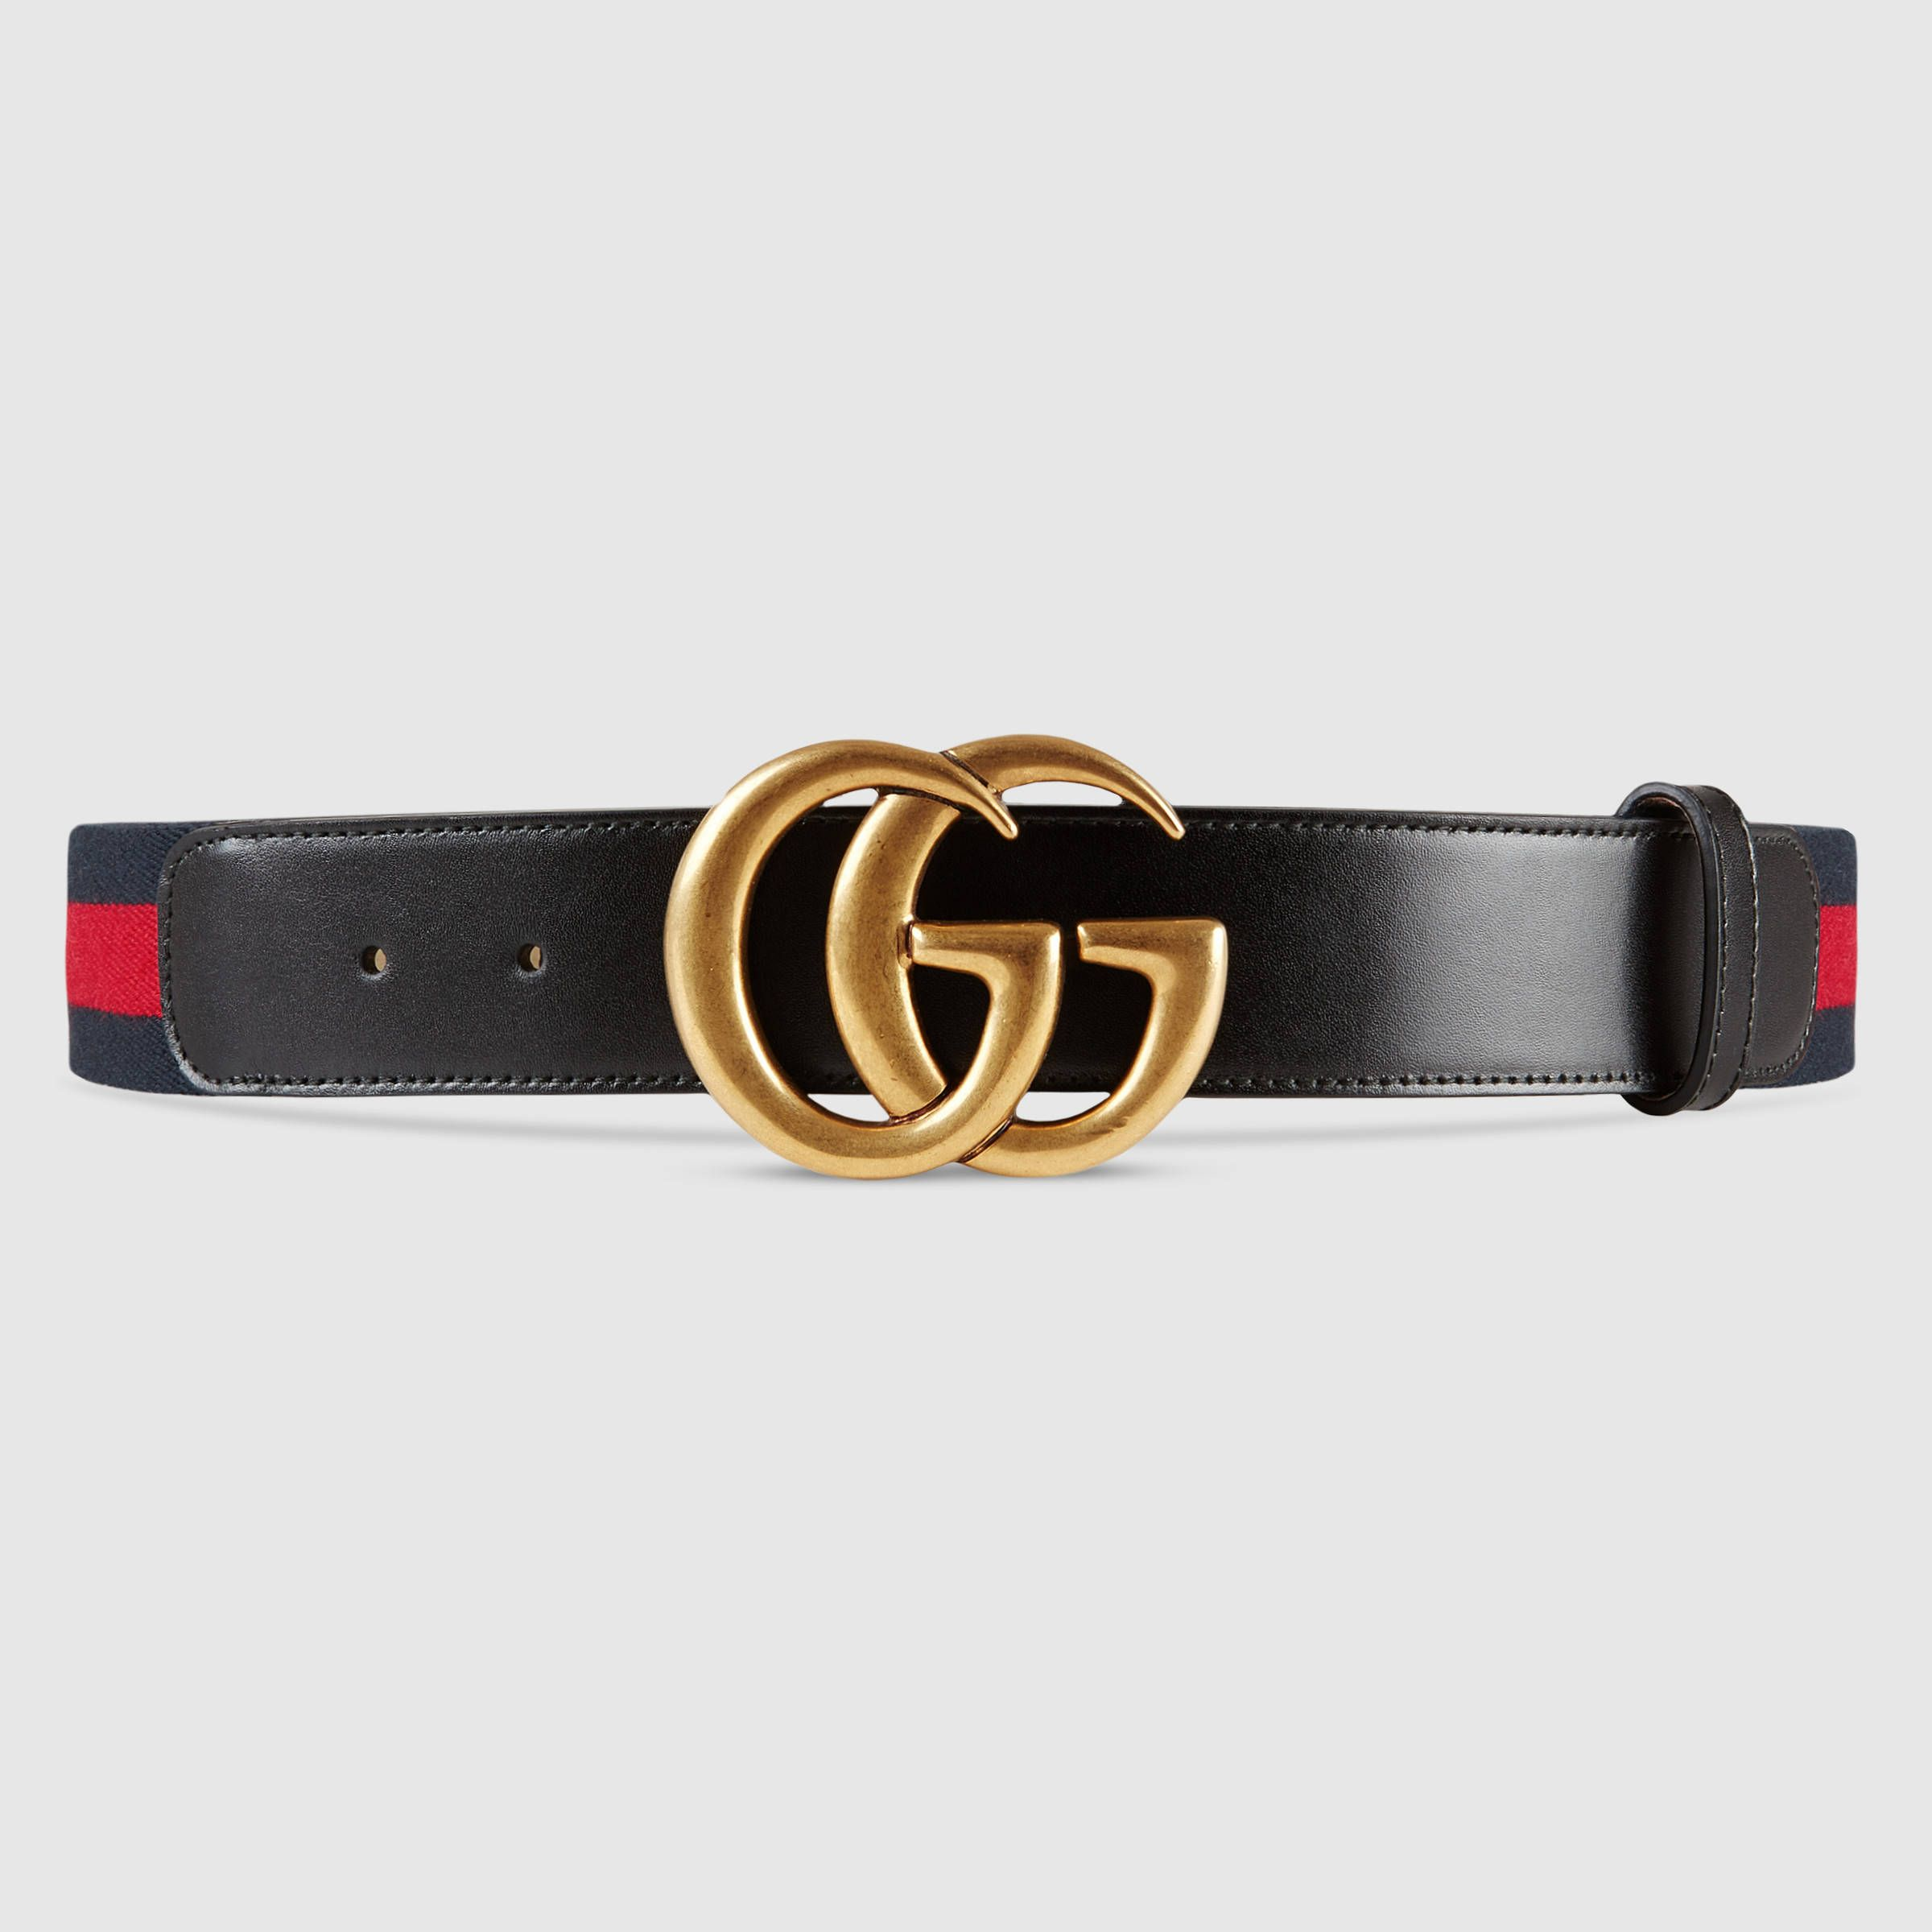 22b750f2200 Nylon Web belt with double G buckle - Gucci Men s Casual 409416H17WT8632